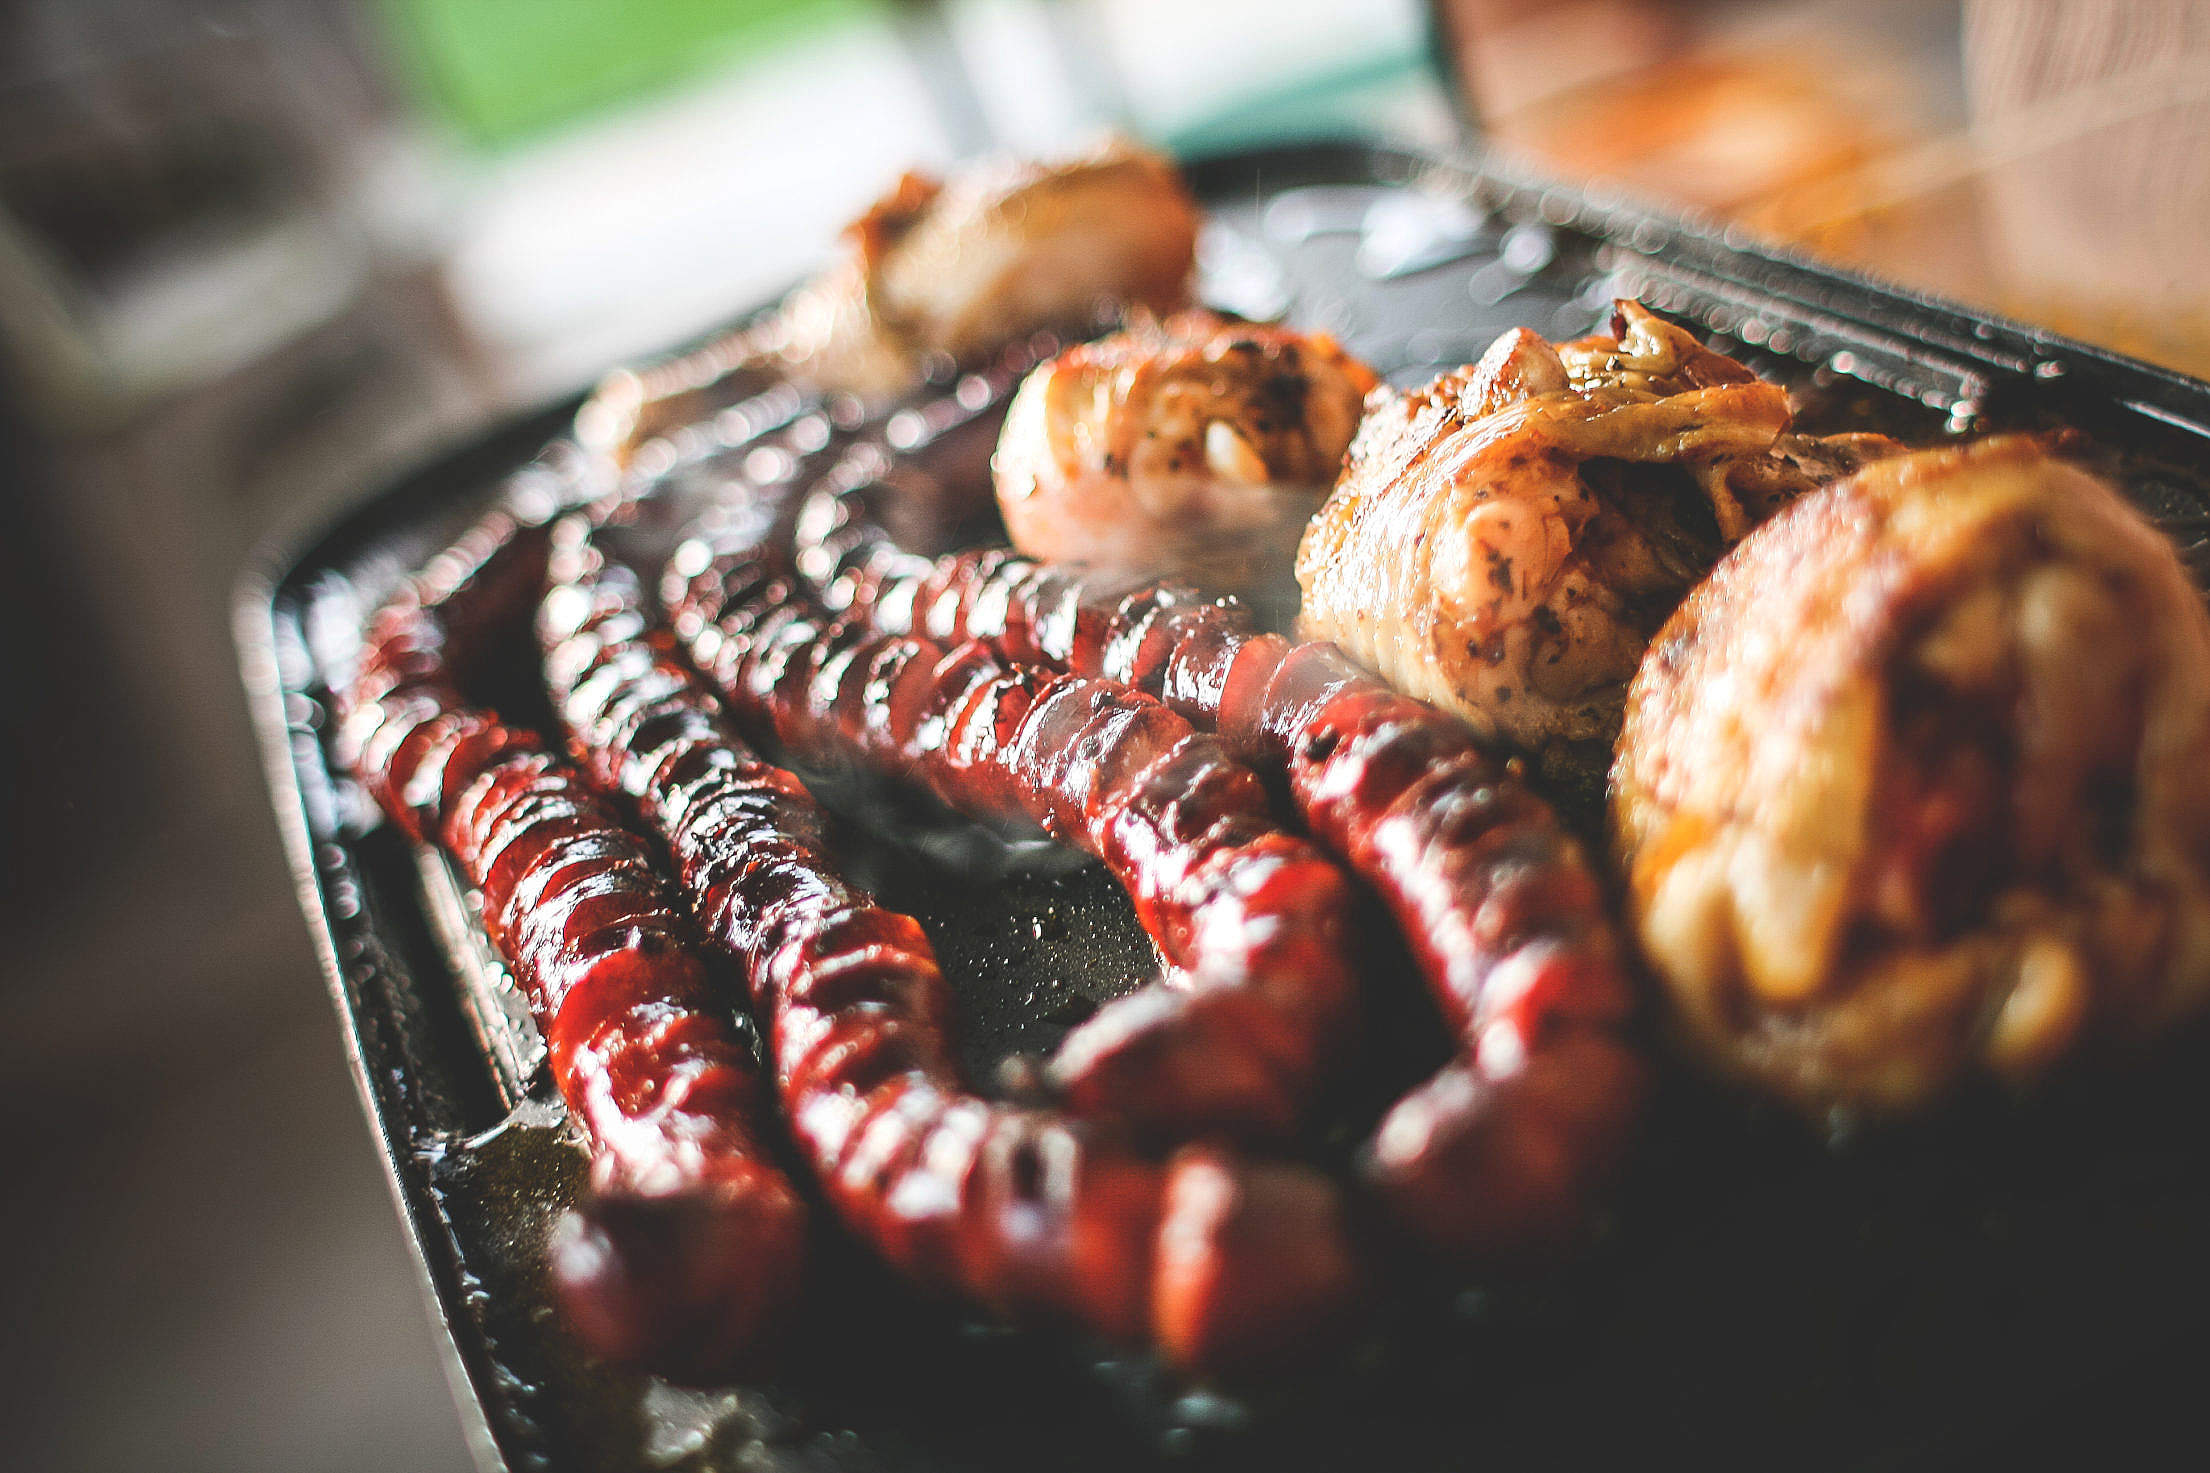 Grill BBQ Party Free Stock Photo